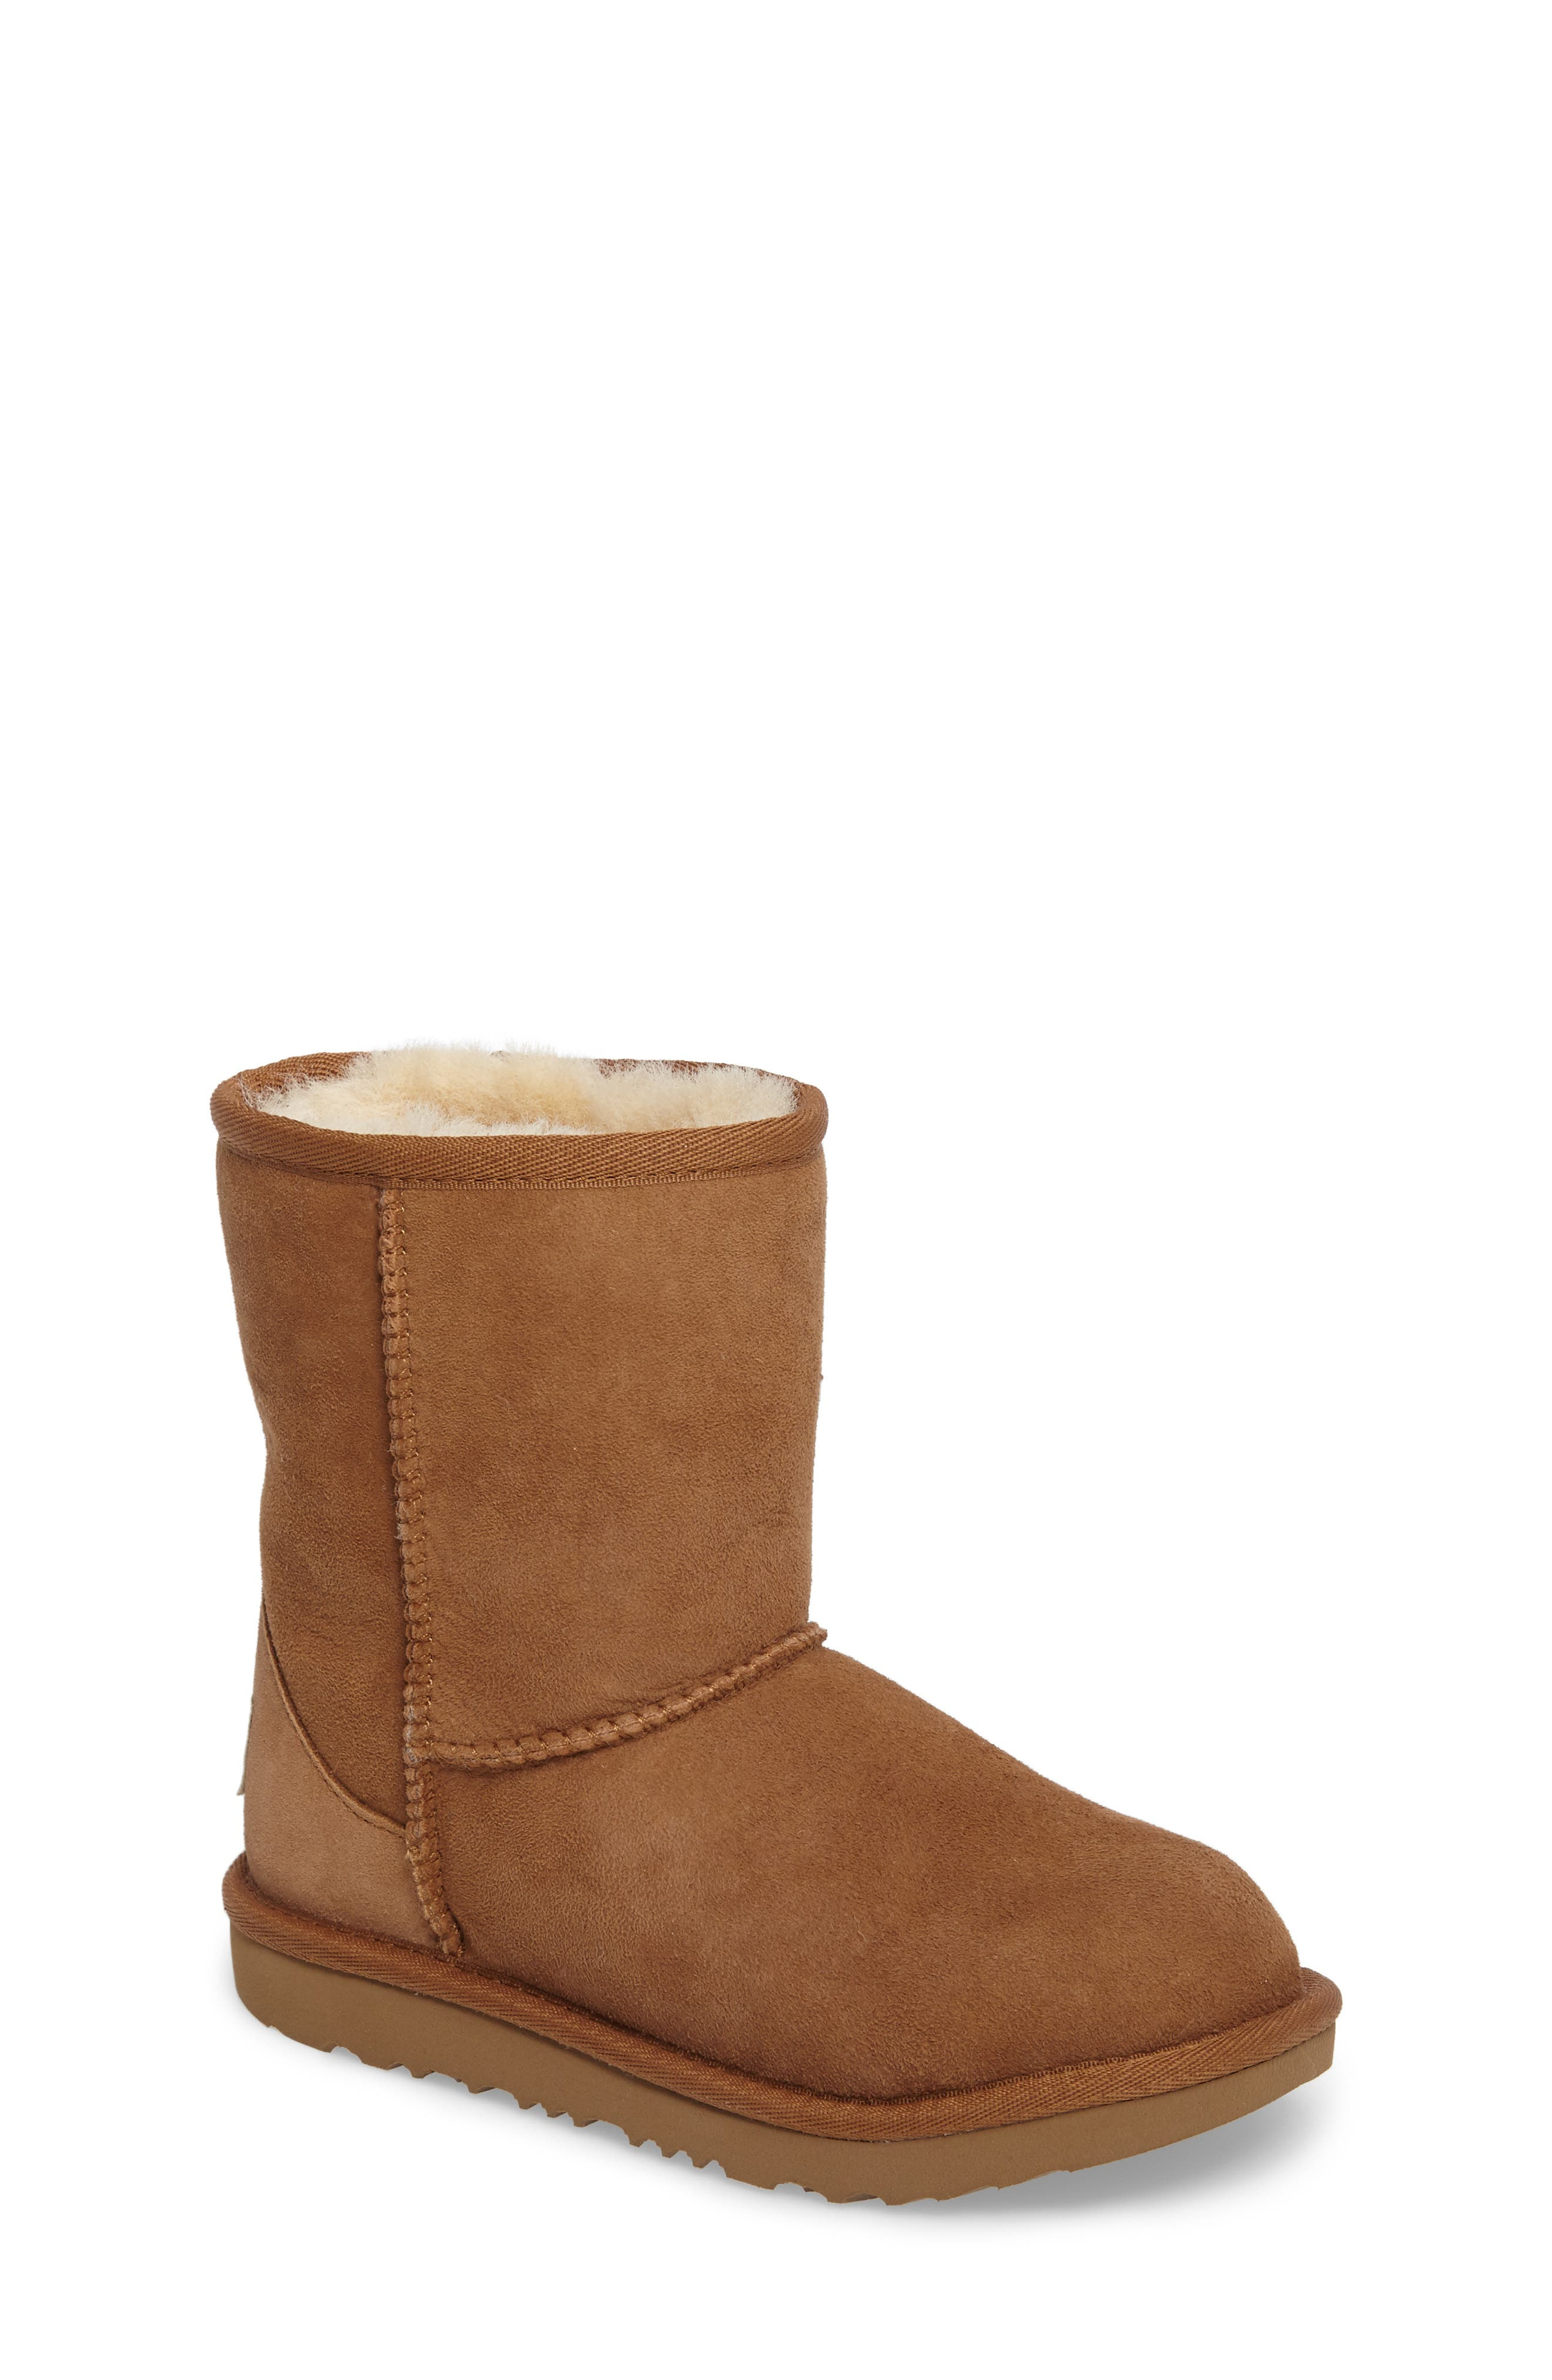 Classic II Water Resistant Genuine Shearling Boot,                         Main,                         color, Chestnut Brown